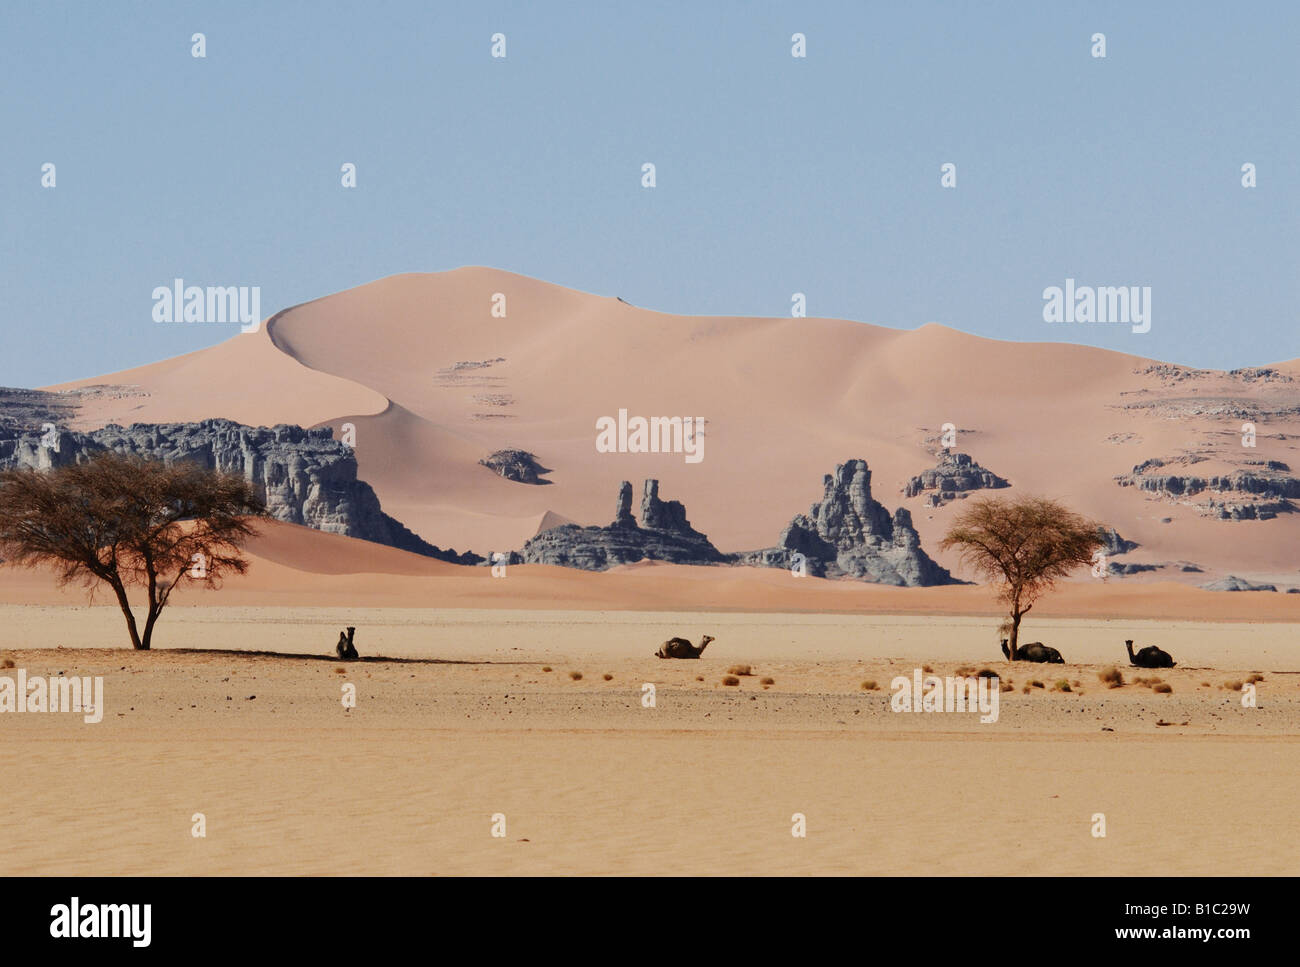 geography / travel, Algeria, landscapes, Sahara Desert, dunes of Erg Tin Merzouga, camels under Acacia trees, Additional - Stock Image